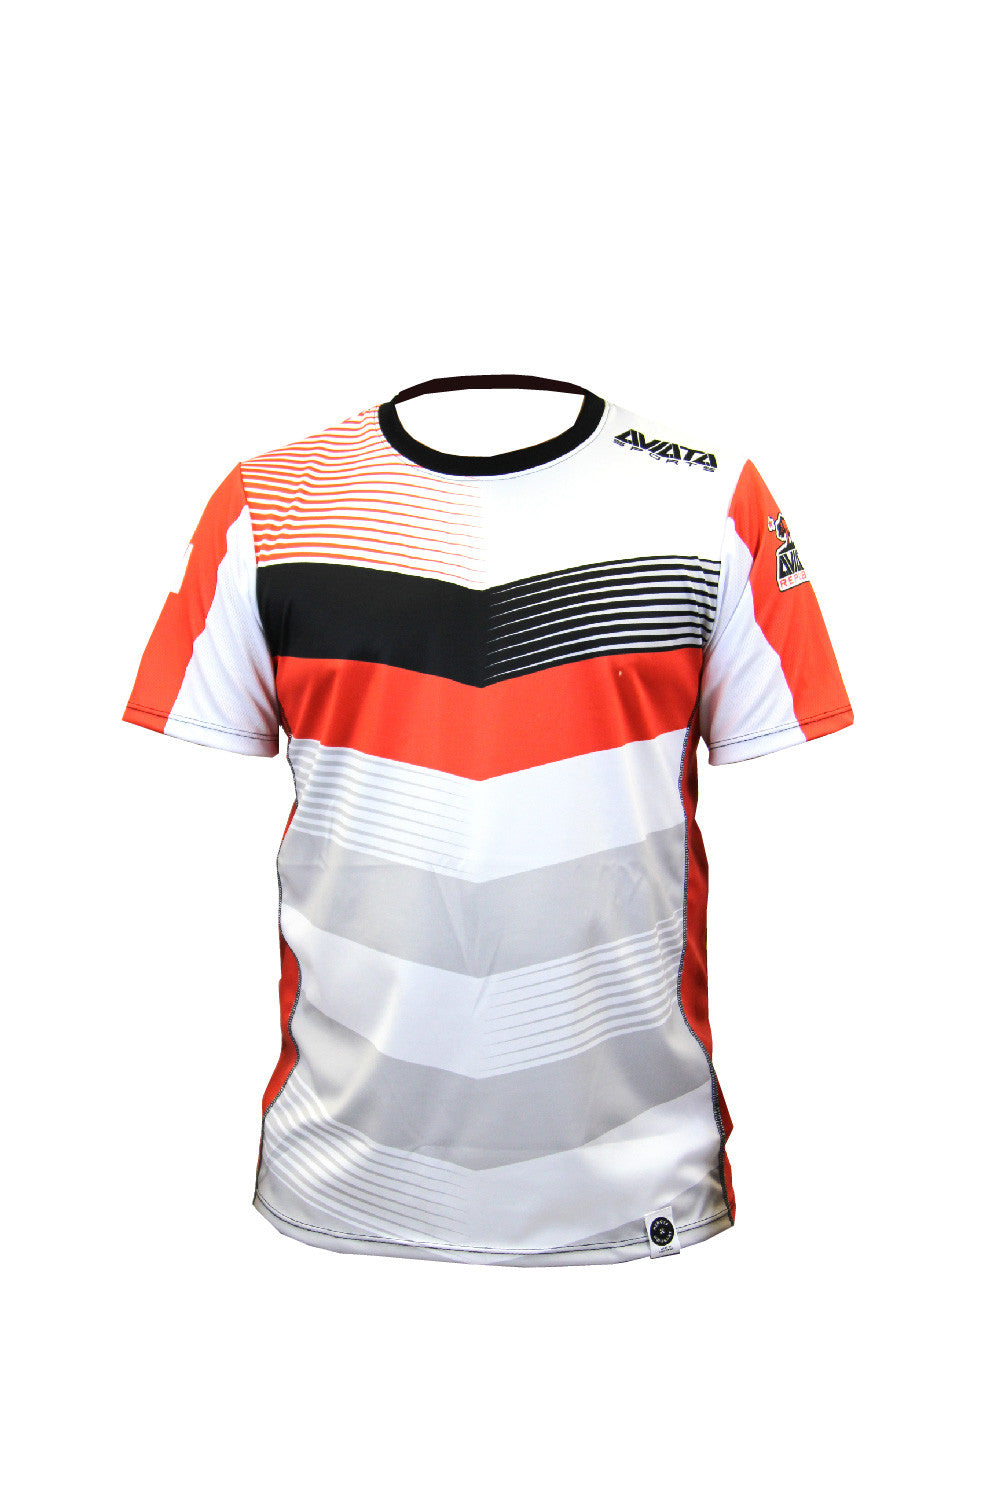 Stratus Short Sleeve GK jersey with #1 /Heroes & Hooligans Collobaration